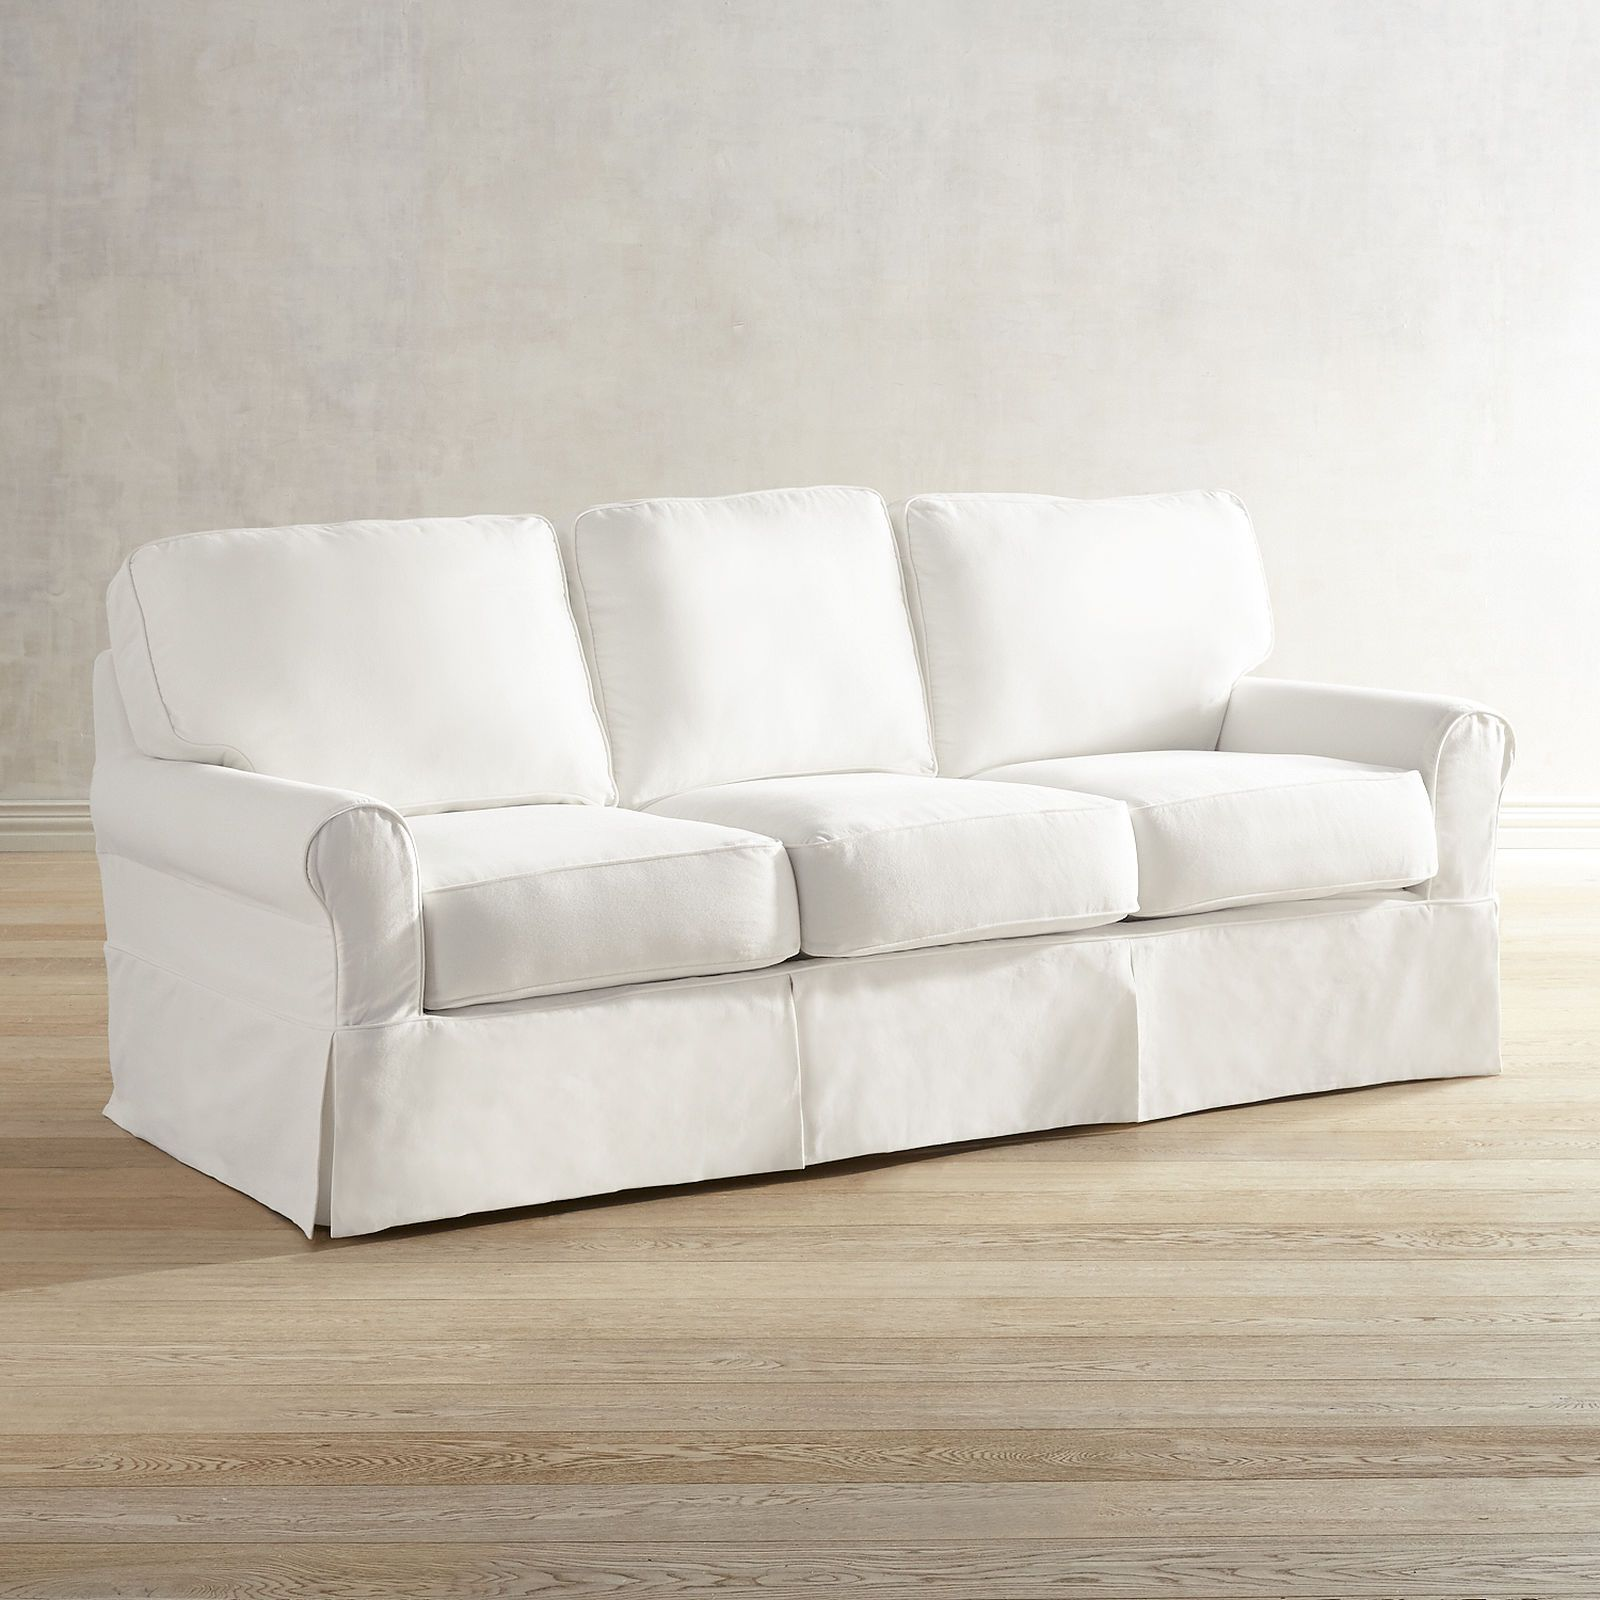 By Popular Demand Our Lia Slipcovered Collection Has Been Designed As A Family Friendly Option Featur White Slipcovers White Slipcover Couch Slip Covers Couch